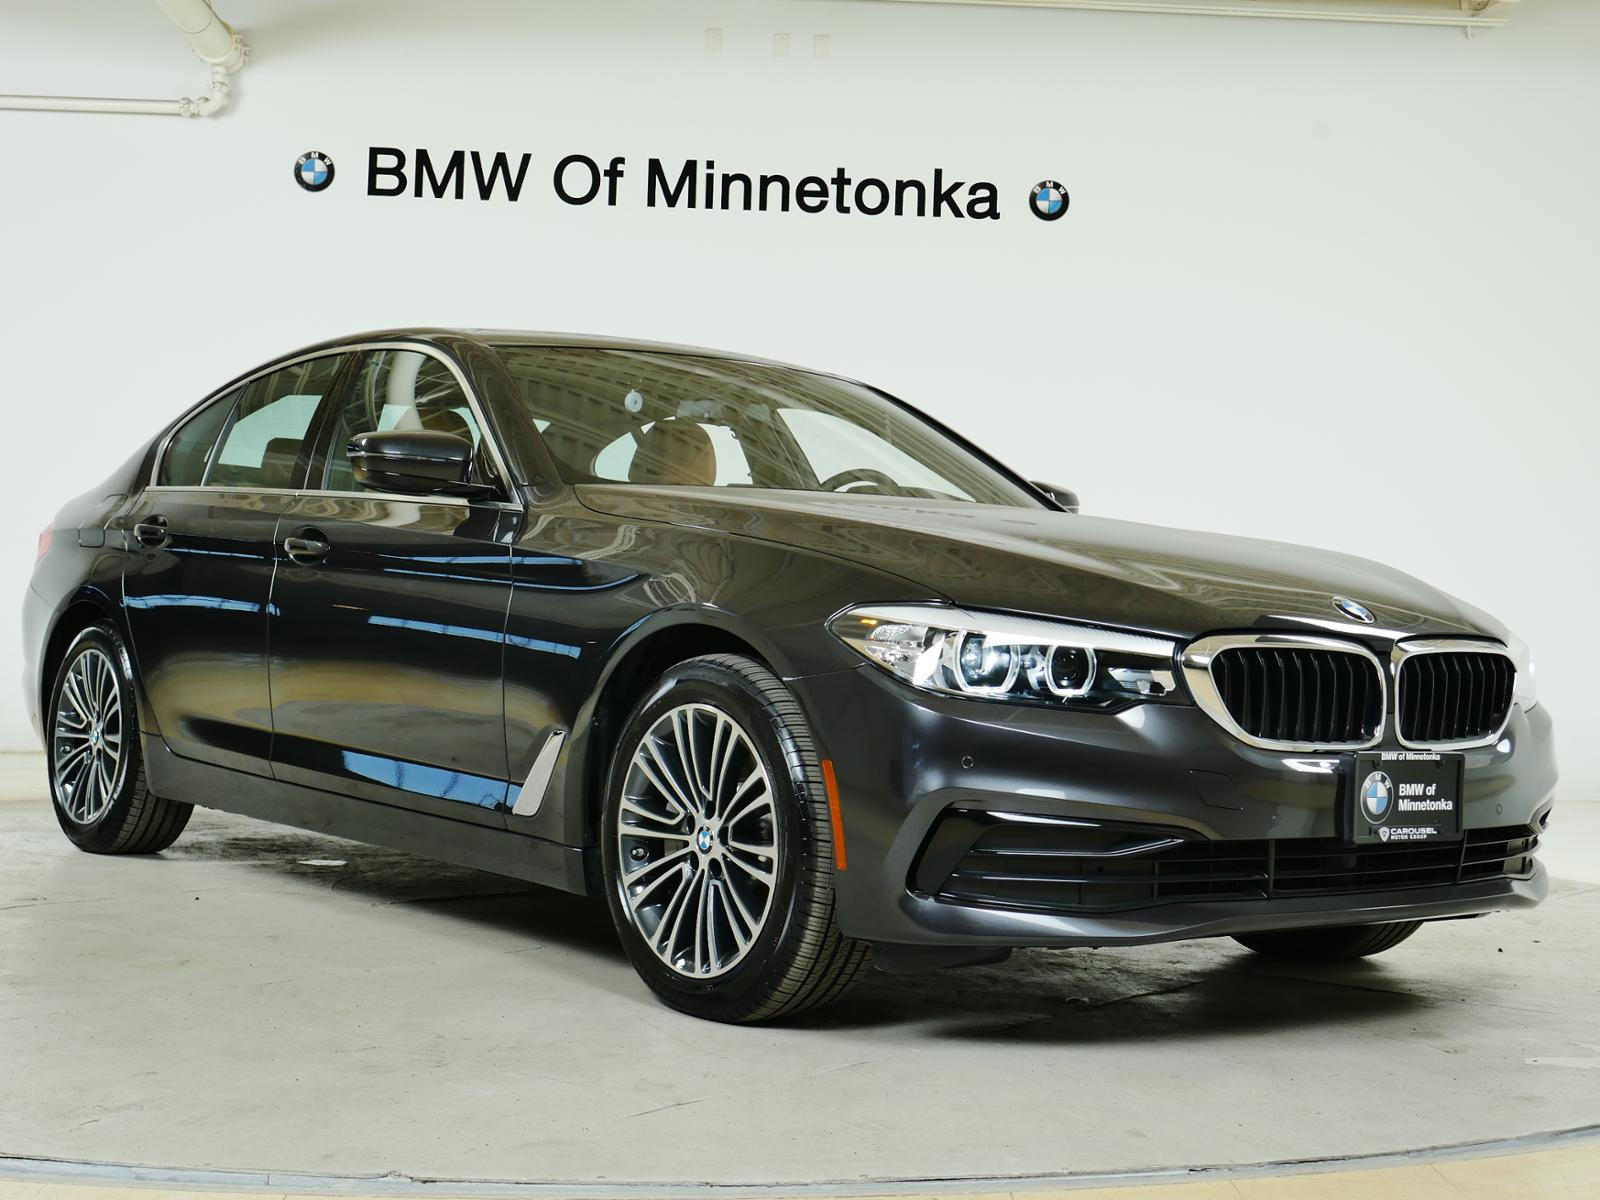 2019 BMW 5 Series 530i Xdrive   4cyl Sedan in Minnetonka, MN